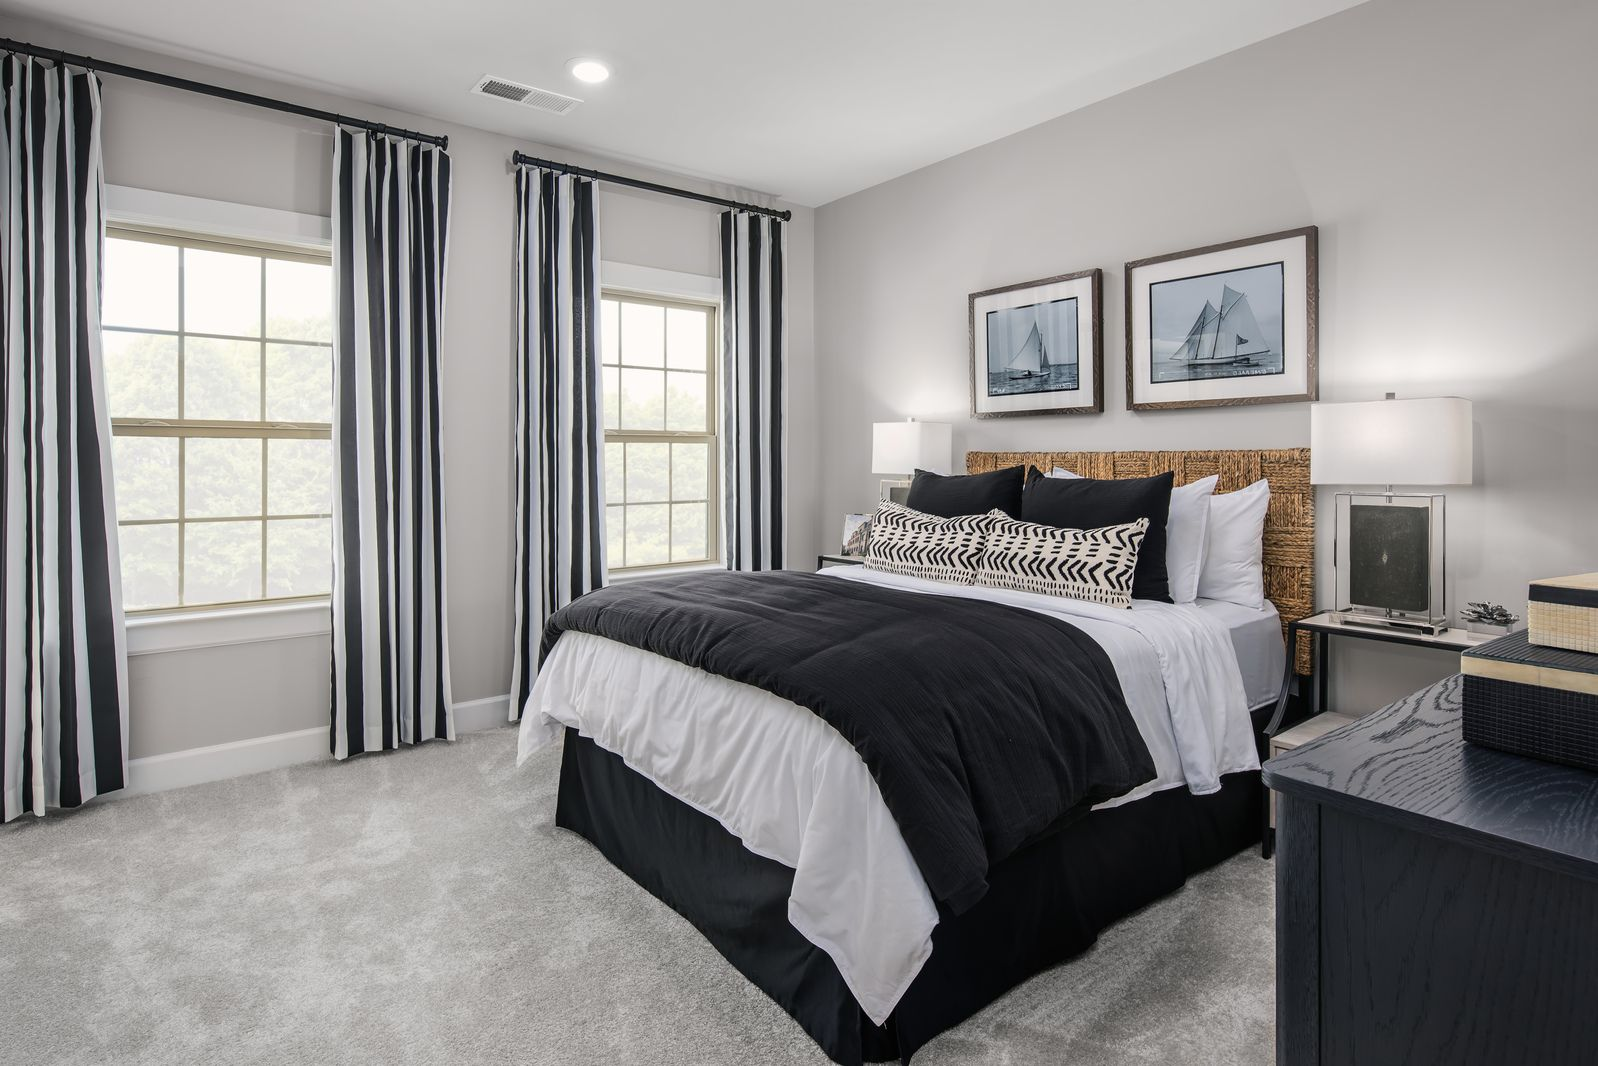 Bedroom featured in the Stratford Hall By NVHomes in Washington, VA